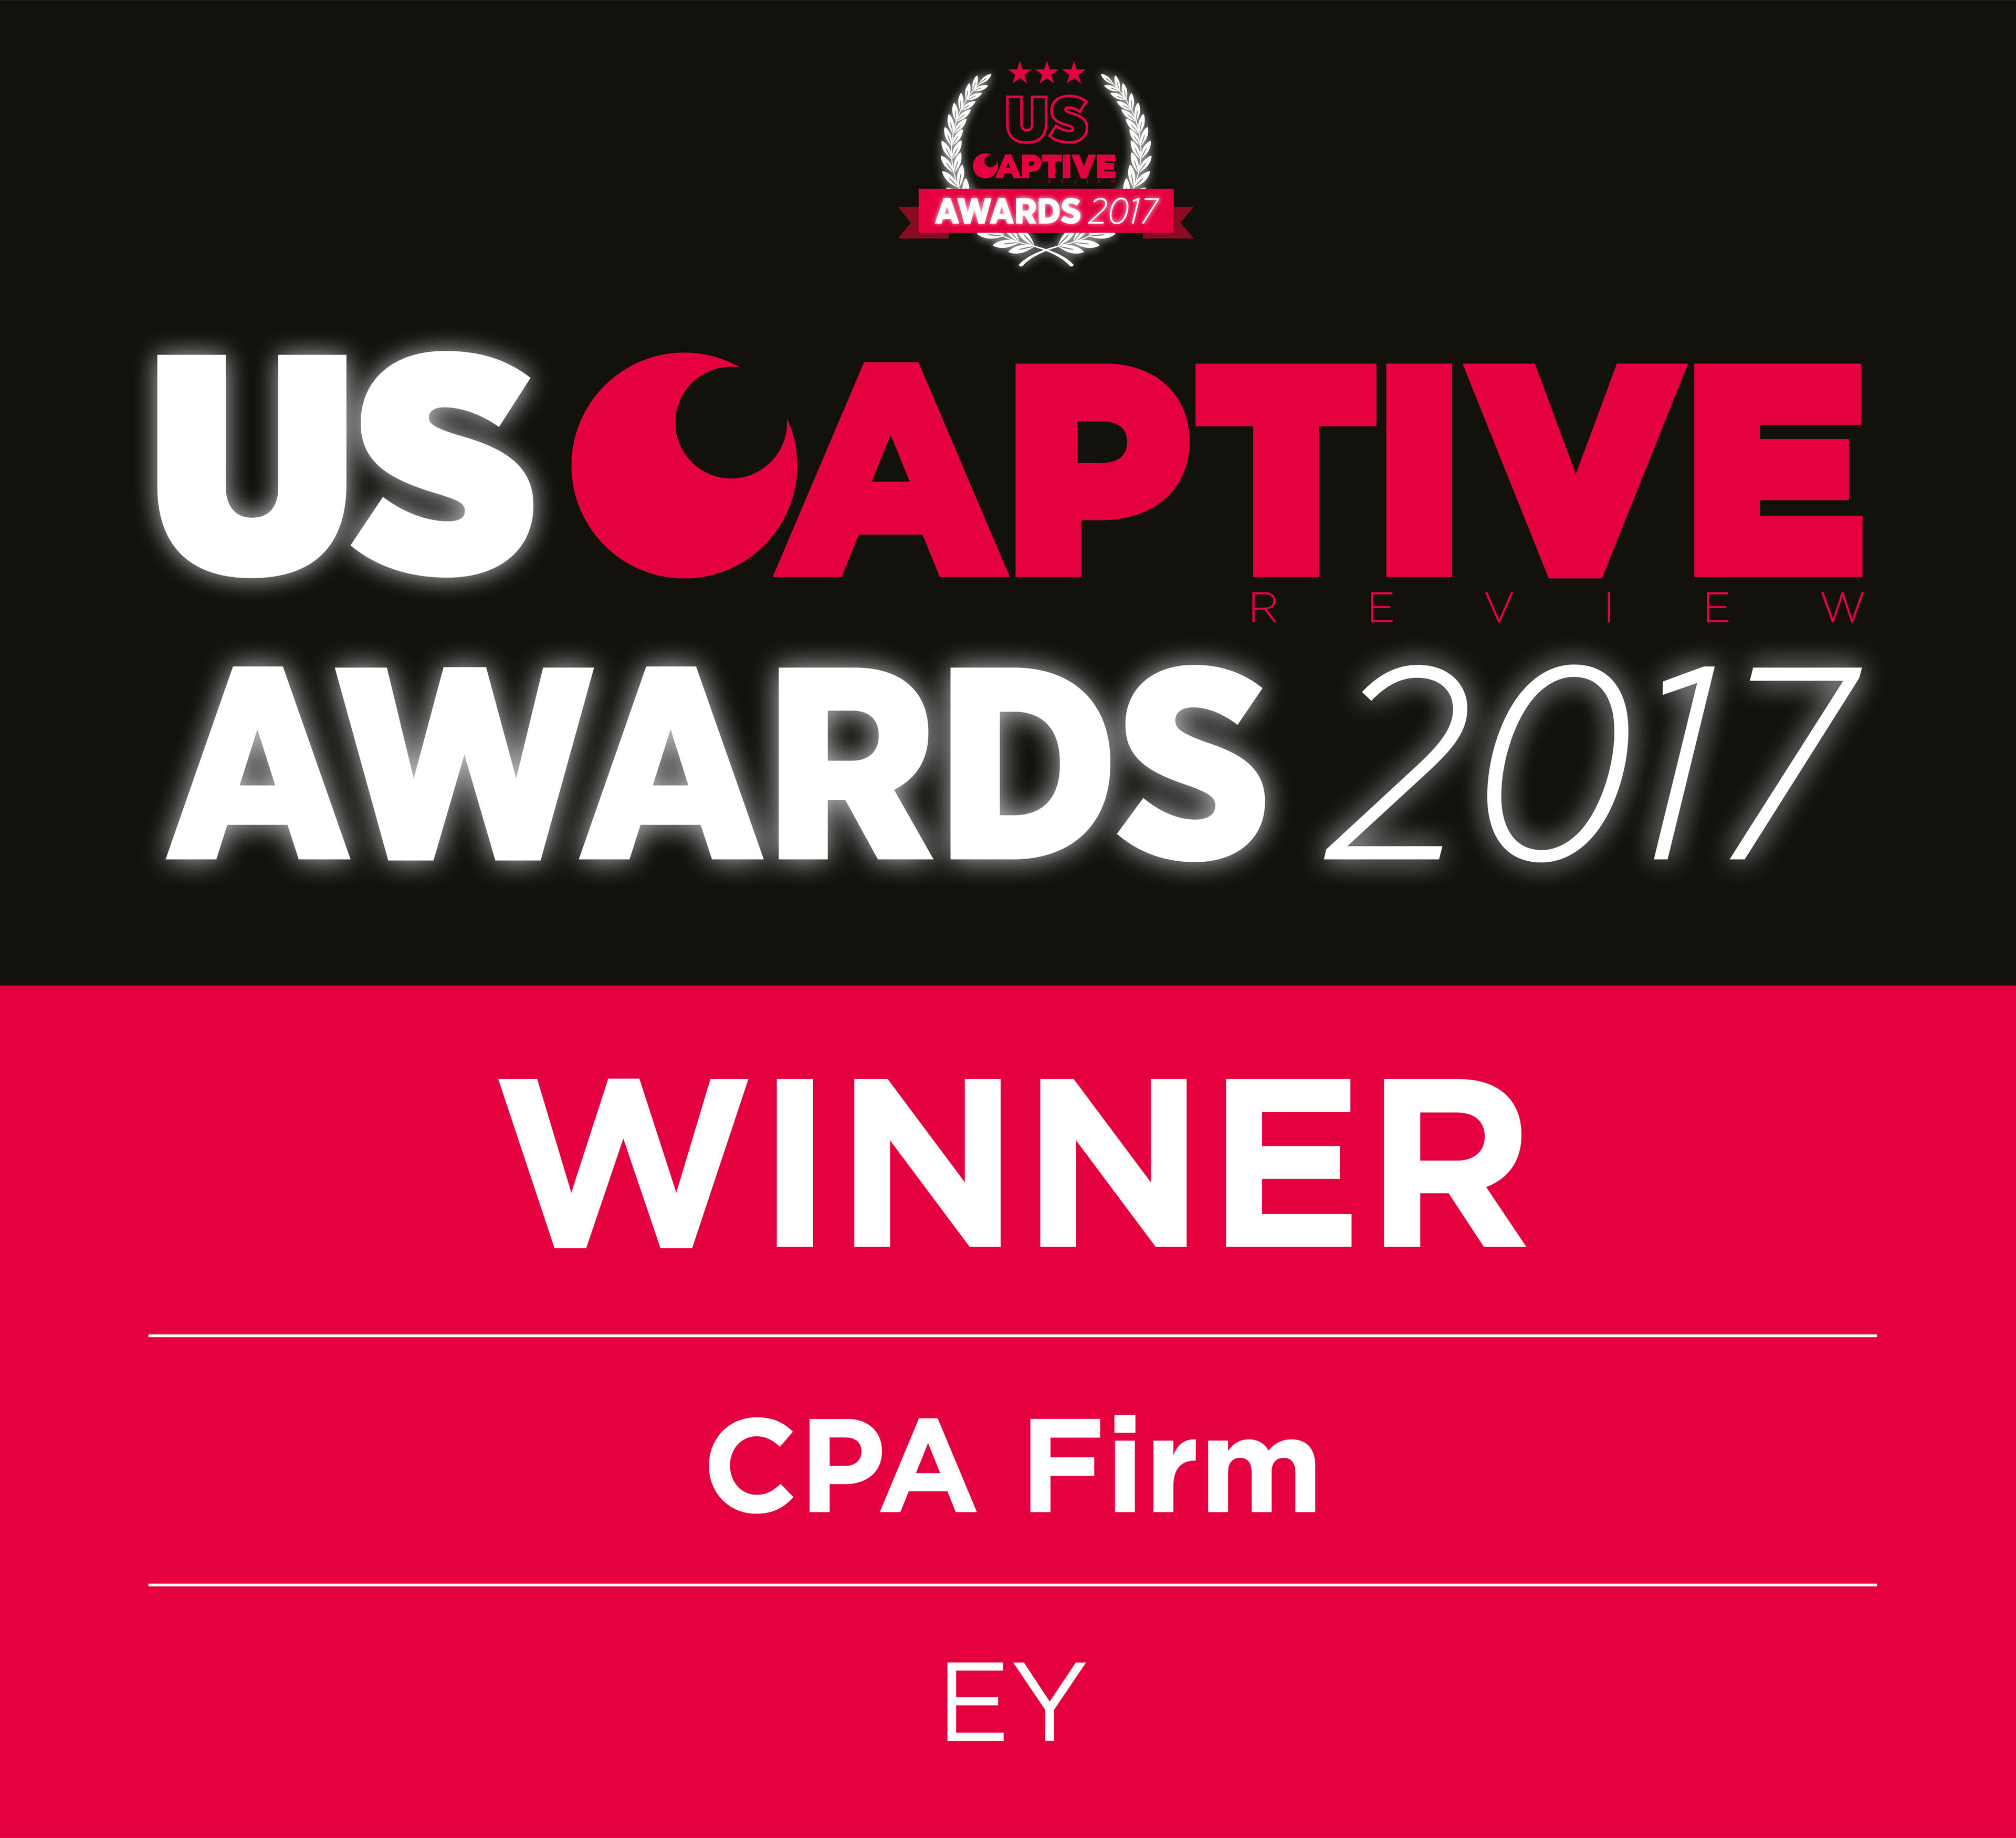 US Captive Awards 2017 Winner CPA Firm EY